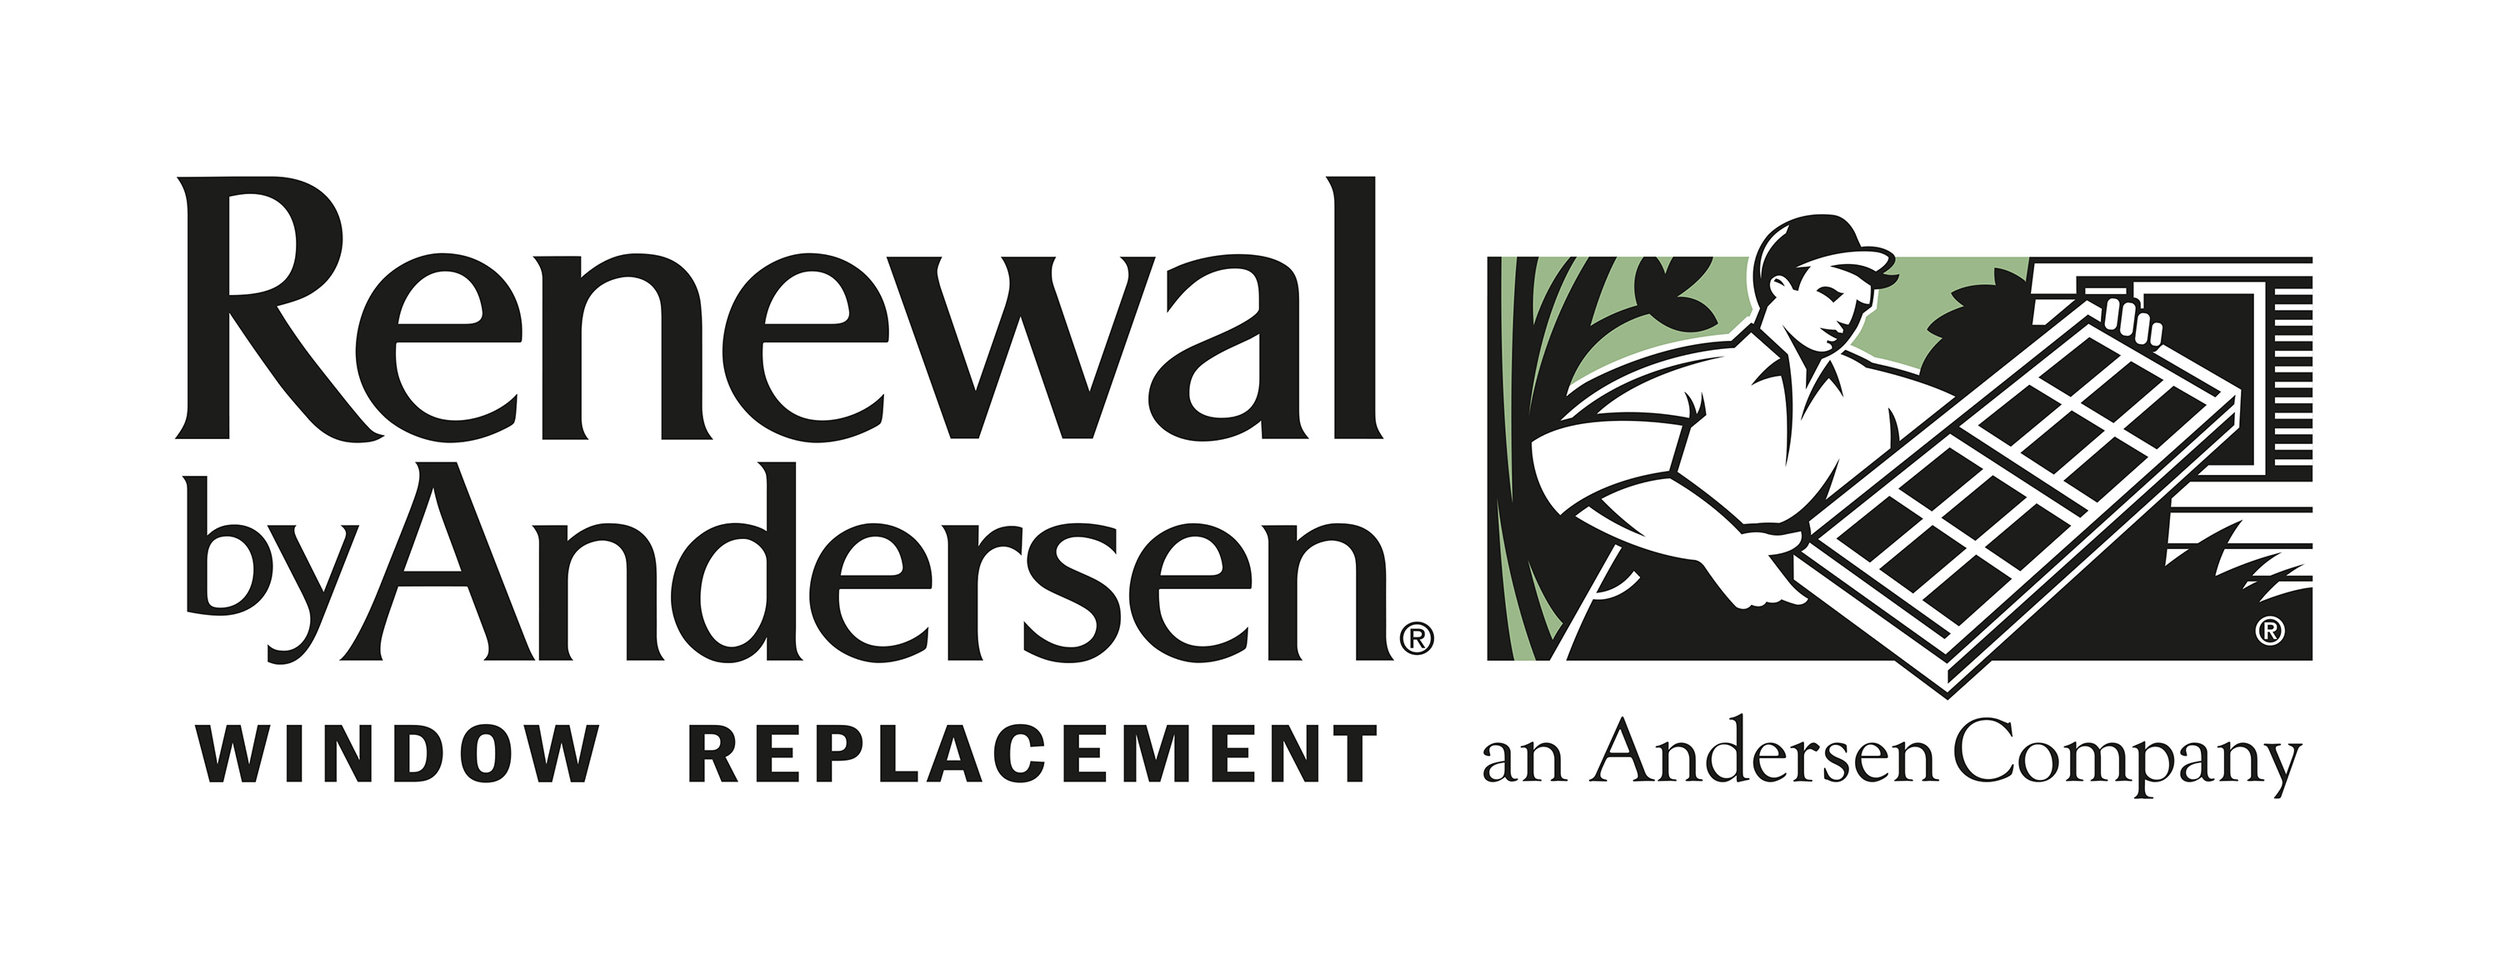 Renewal by Andersen and Camp To Belong River Valley